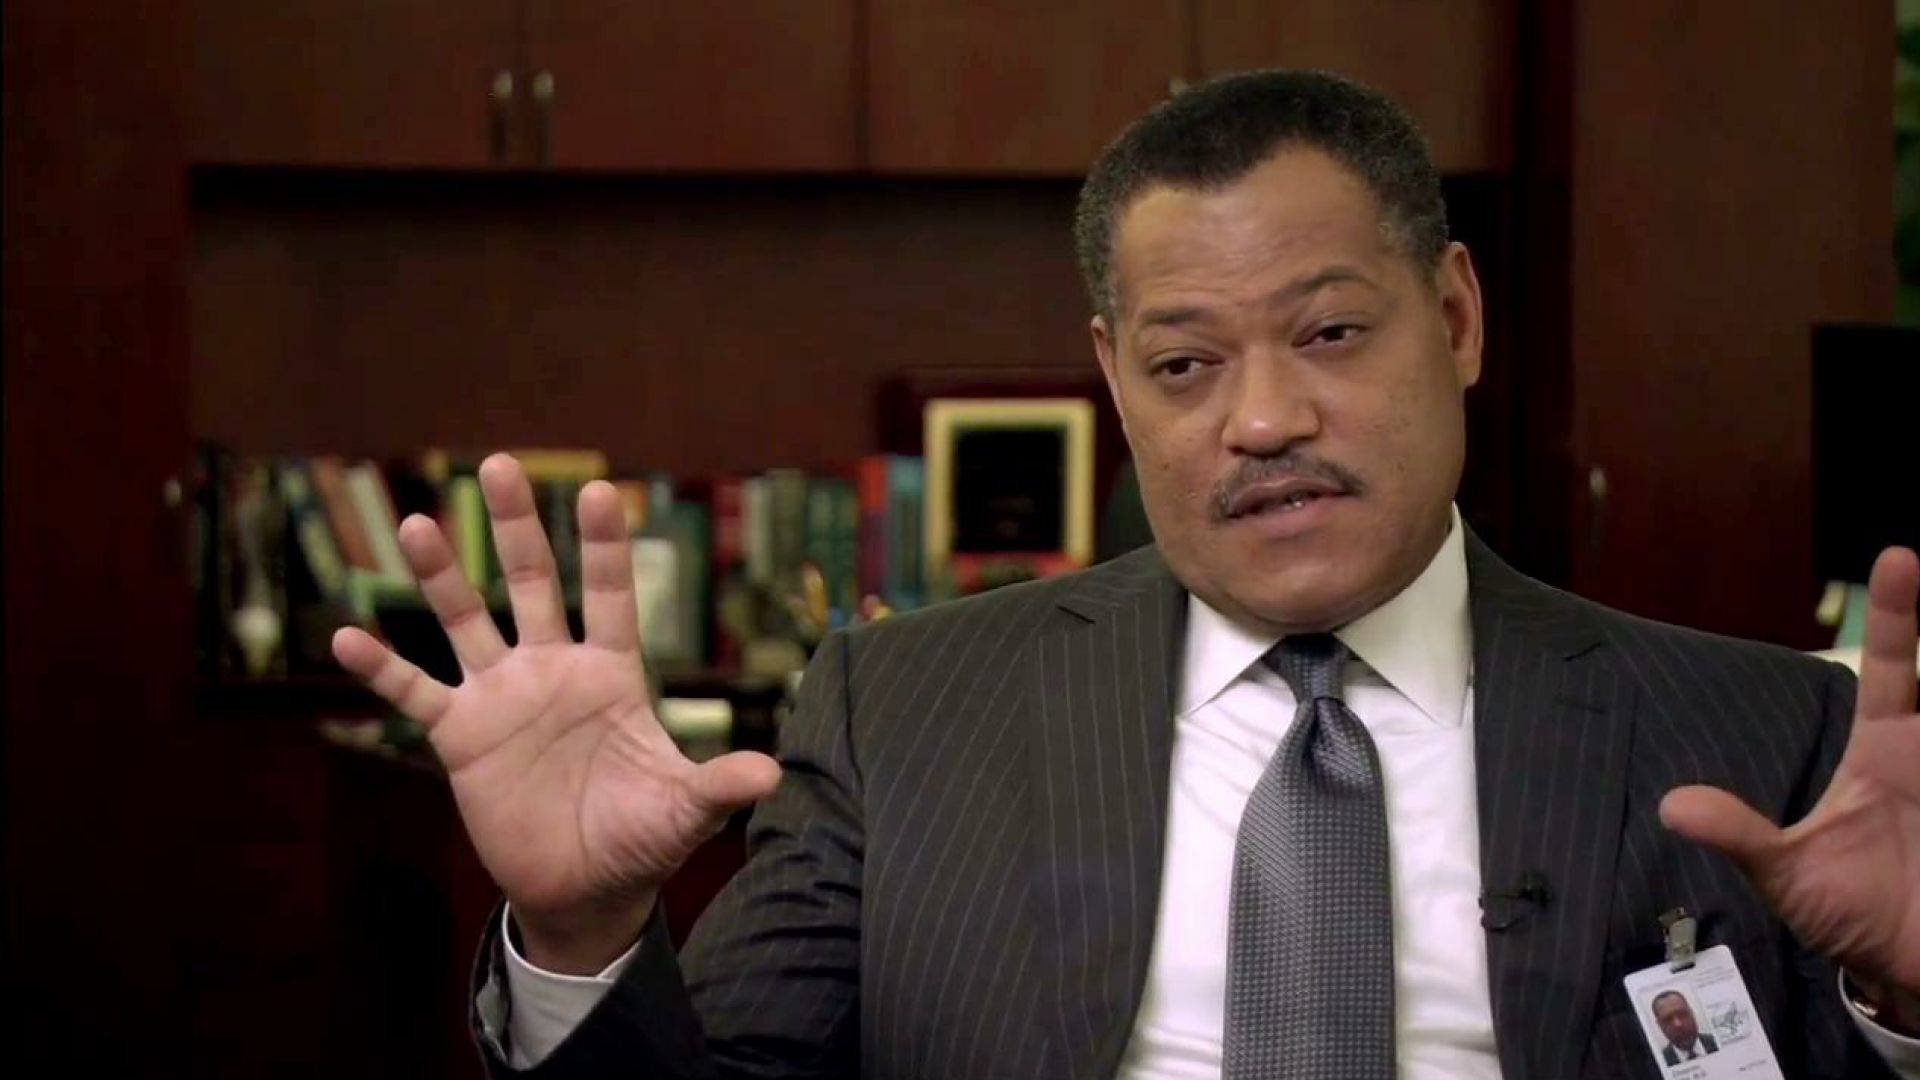 Laurence Fishburne on his character CDC deputy director Ellis Cheever in Contagion